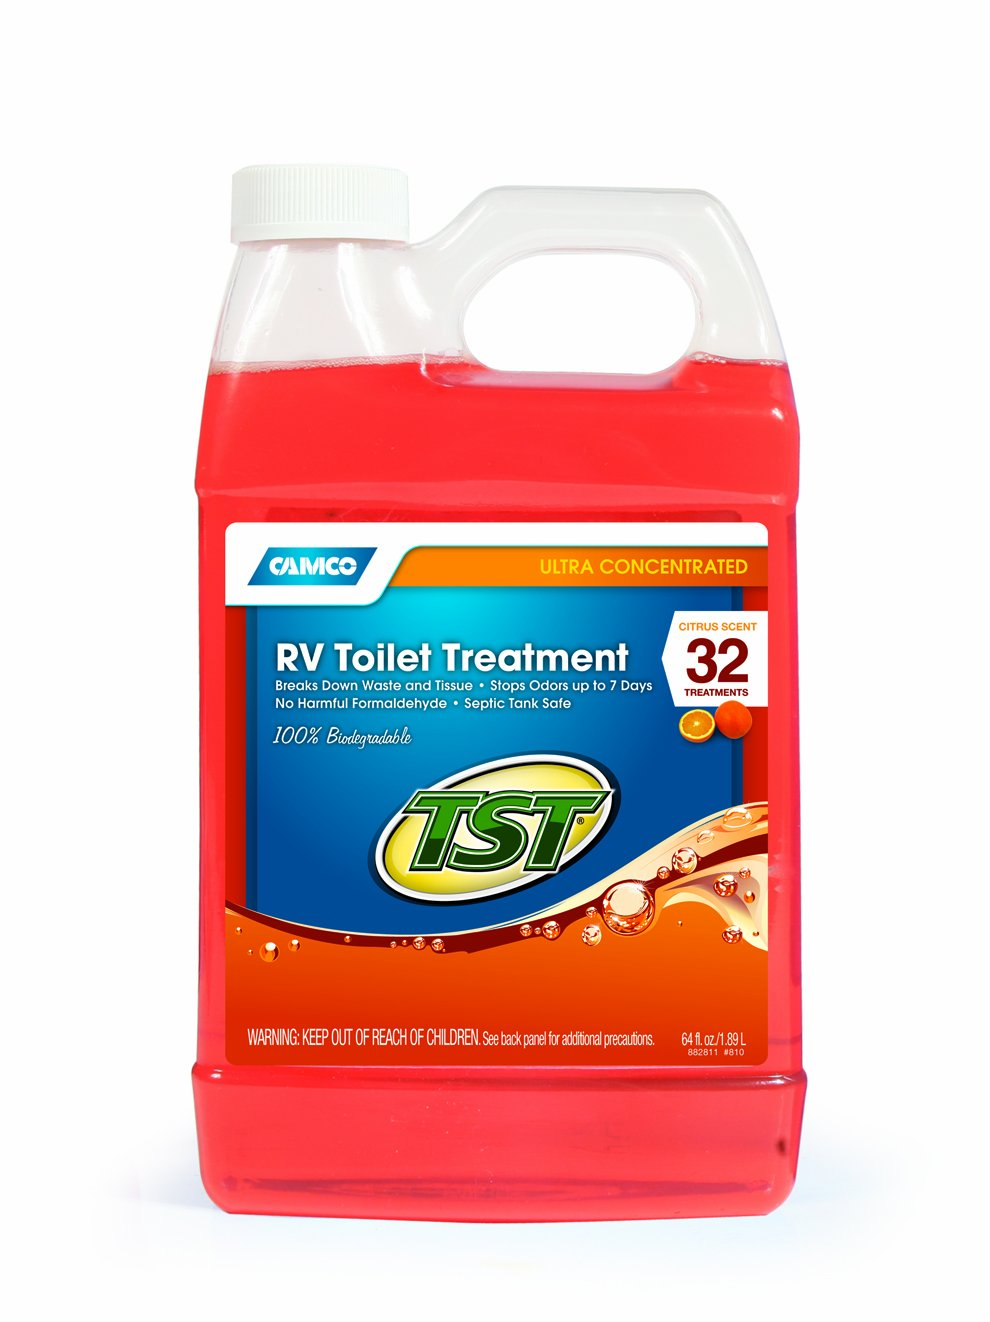 Camco TST Fresh Scent RV Toilet Treatment, Formaldehyde Free, Breaks Down Waste And Tissue, Septic Tank Safe, Treats up to 8 - 40 Gallon Holding Tanks (32 Ounce Bottle) 40226